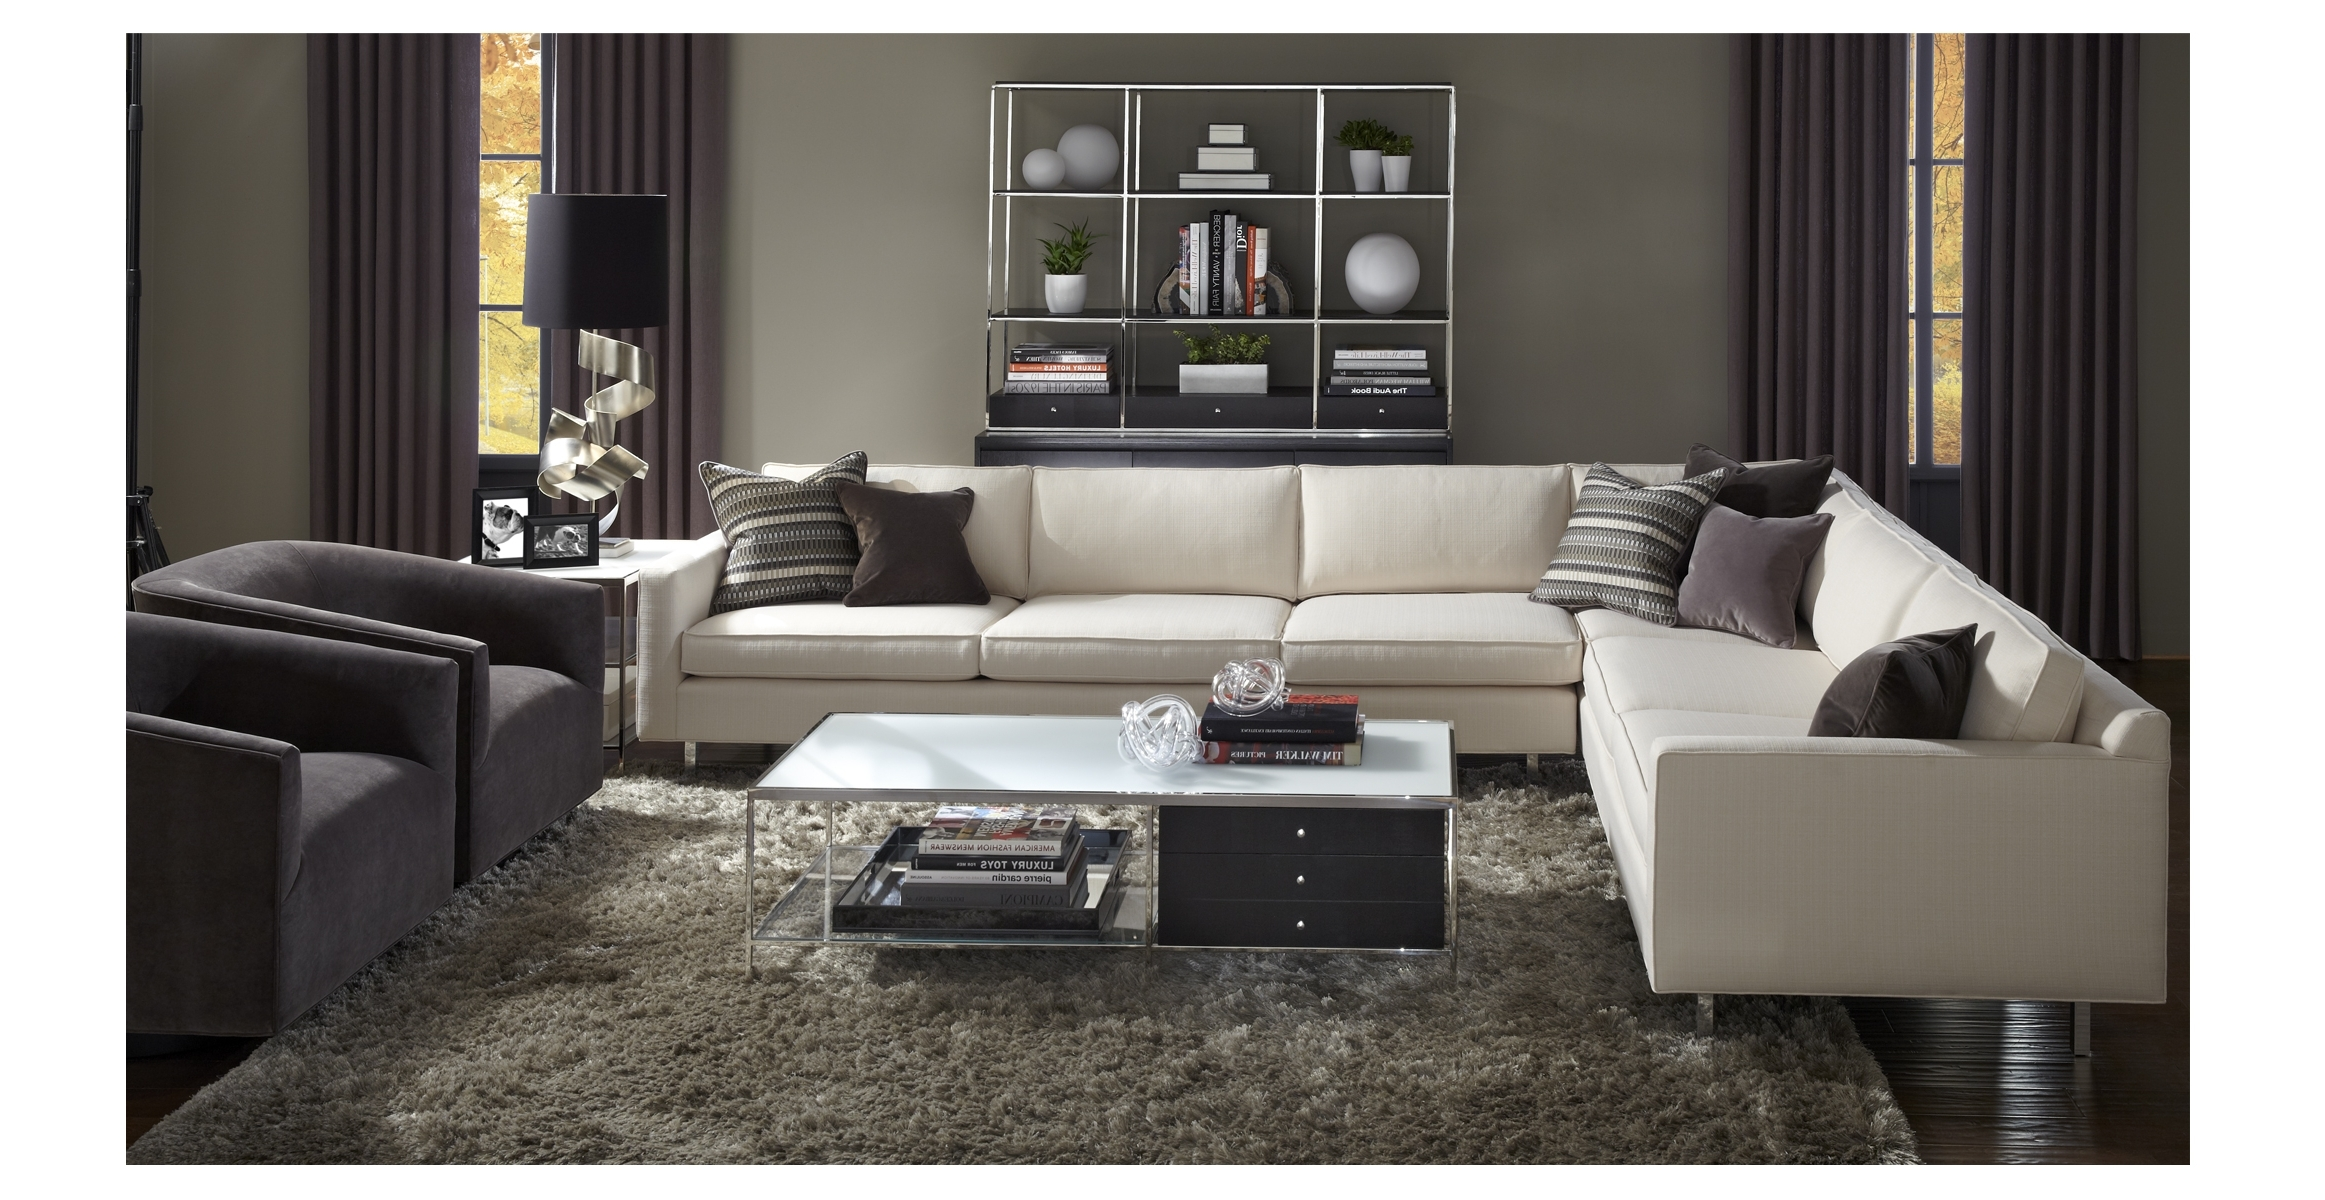 Best And Newest Best Mitchell Gold Sectional Sofa 80 Contemporary Sofa Inspiration With Regard To Gold Sectional Sofas (View 7 of 20)